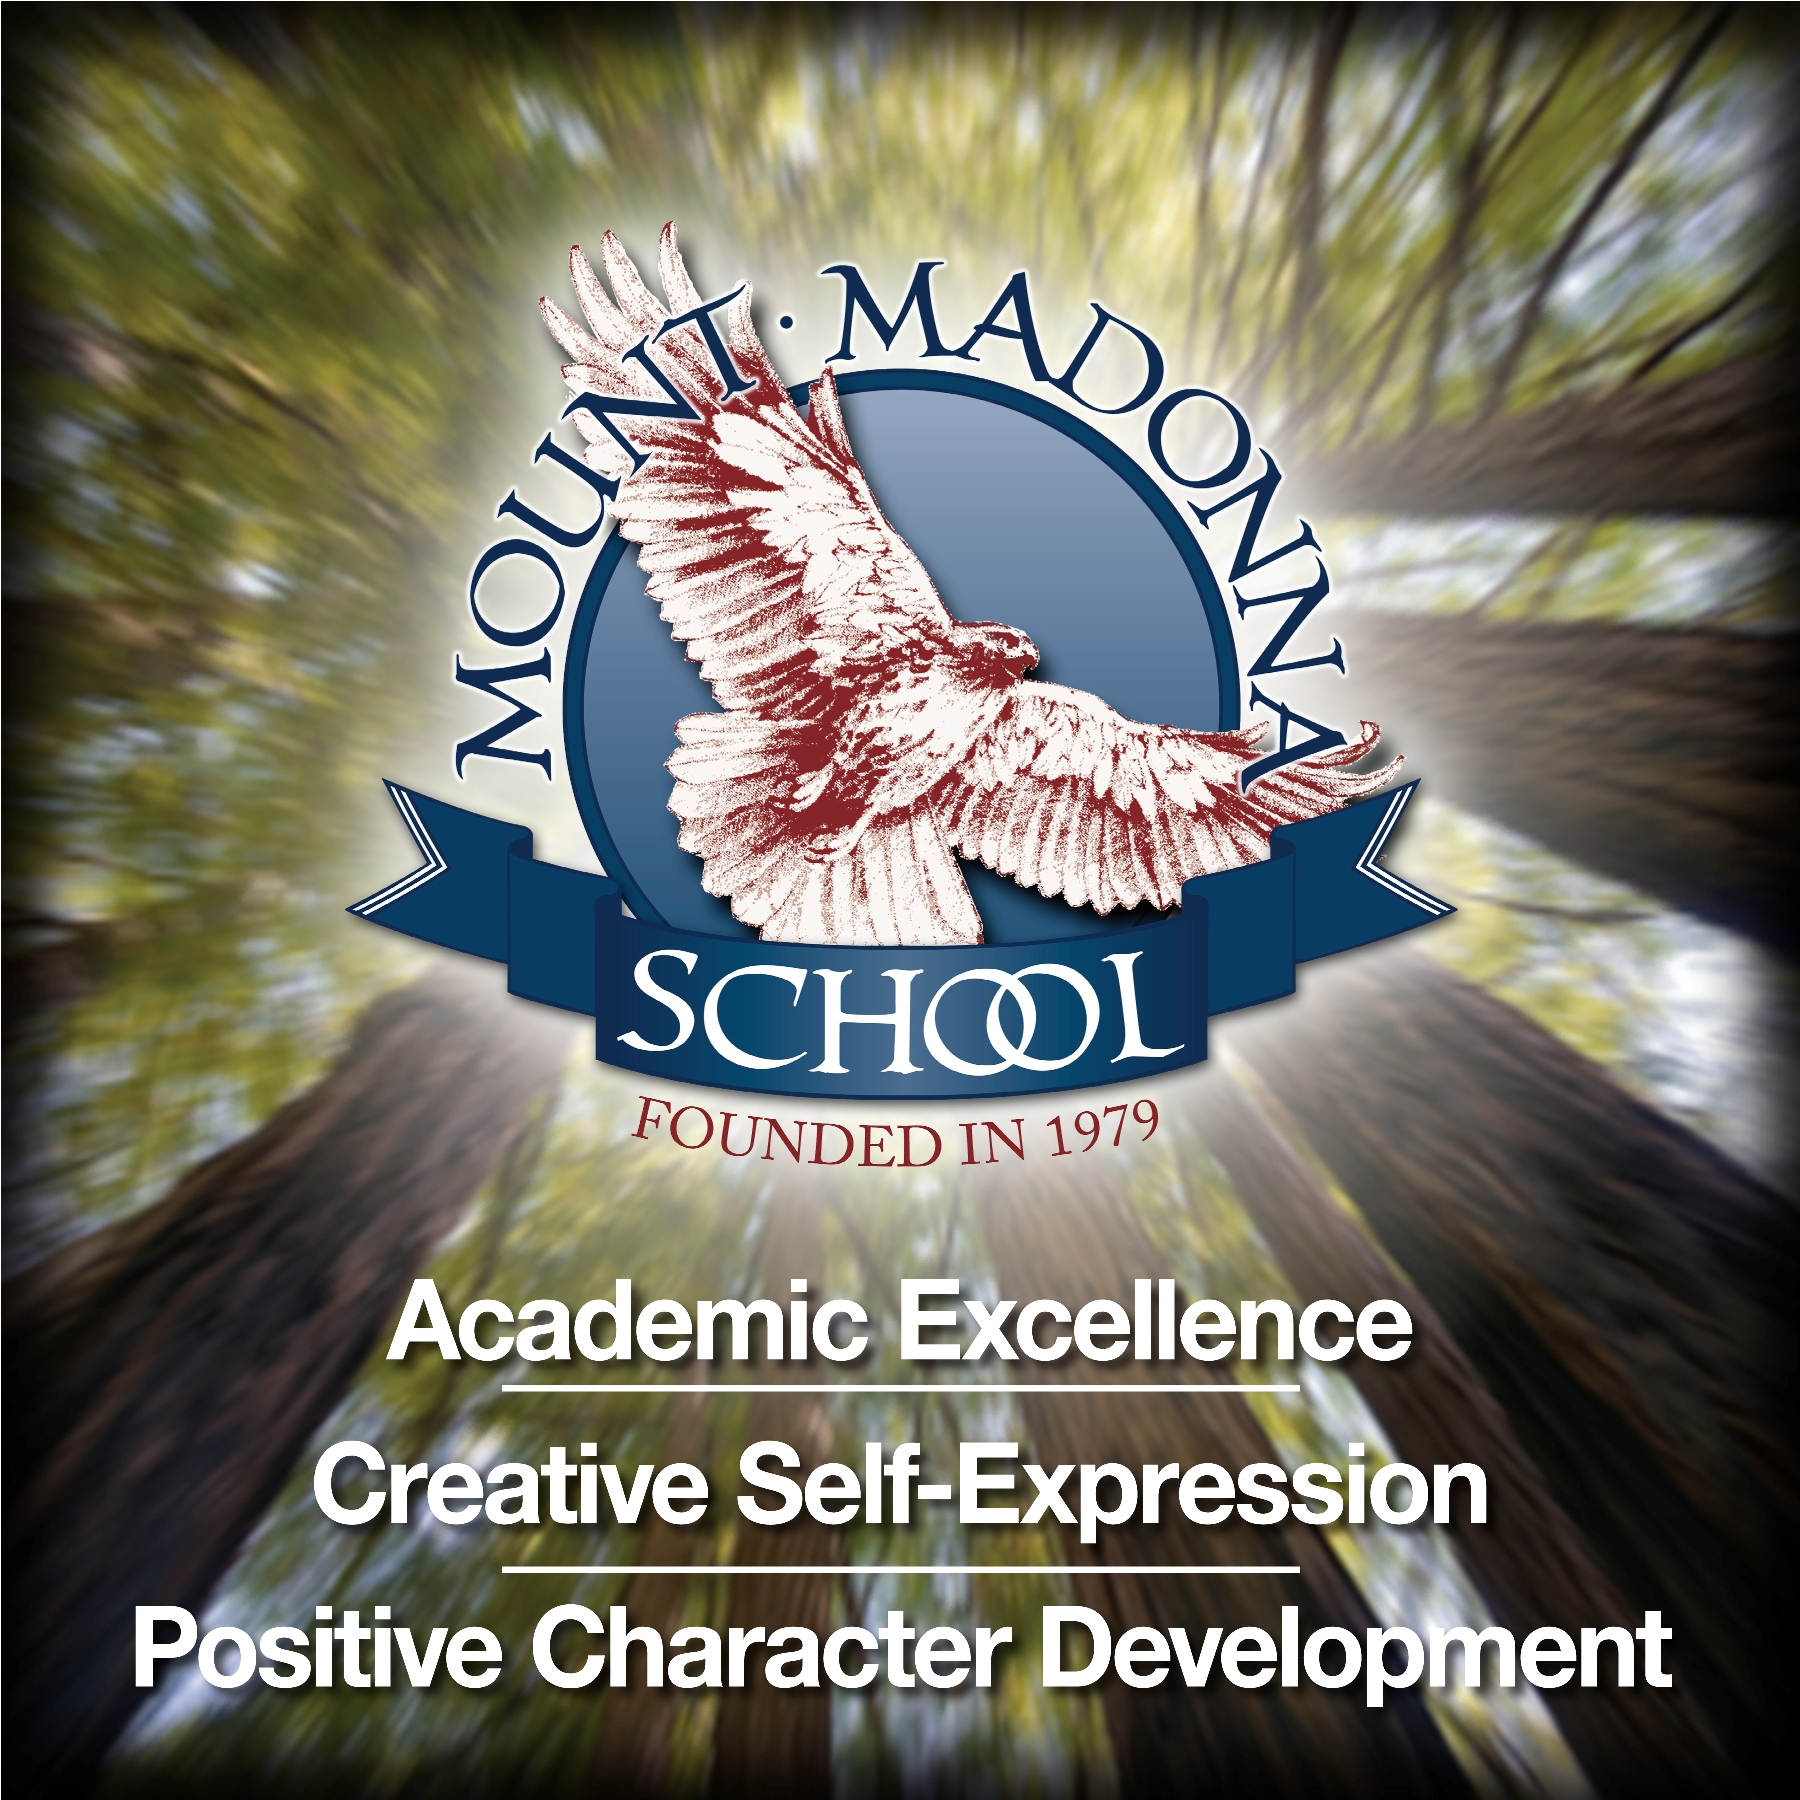 MMS - Academic Excellence - Creative Self Expression - Positive Character Development